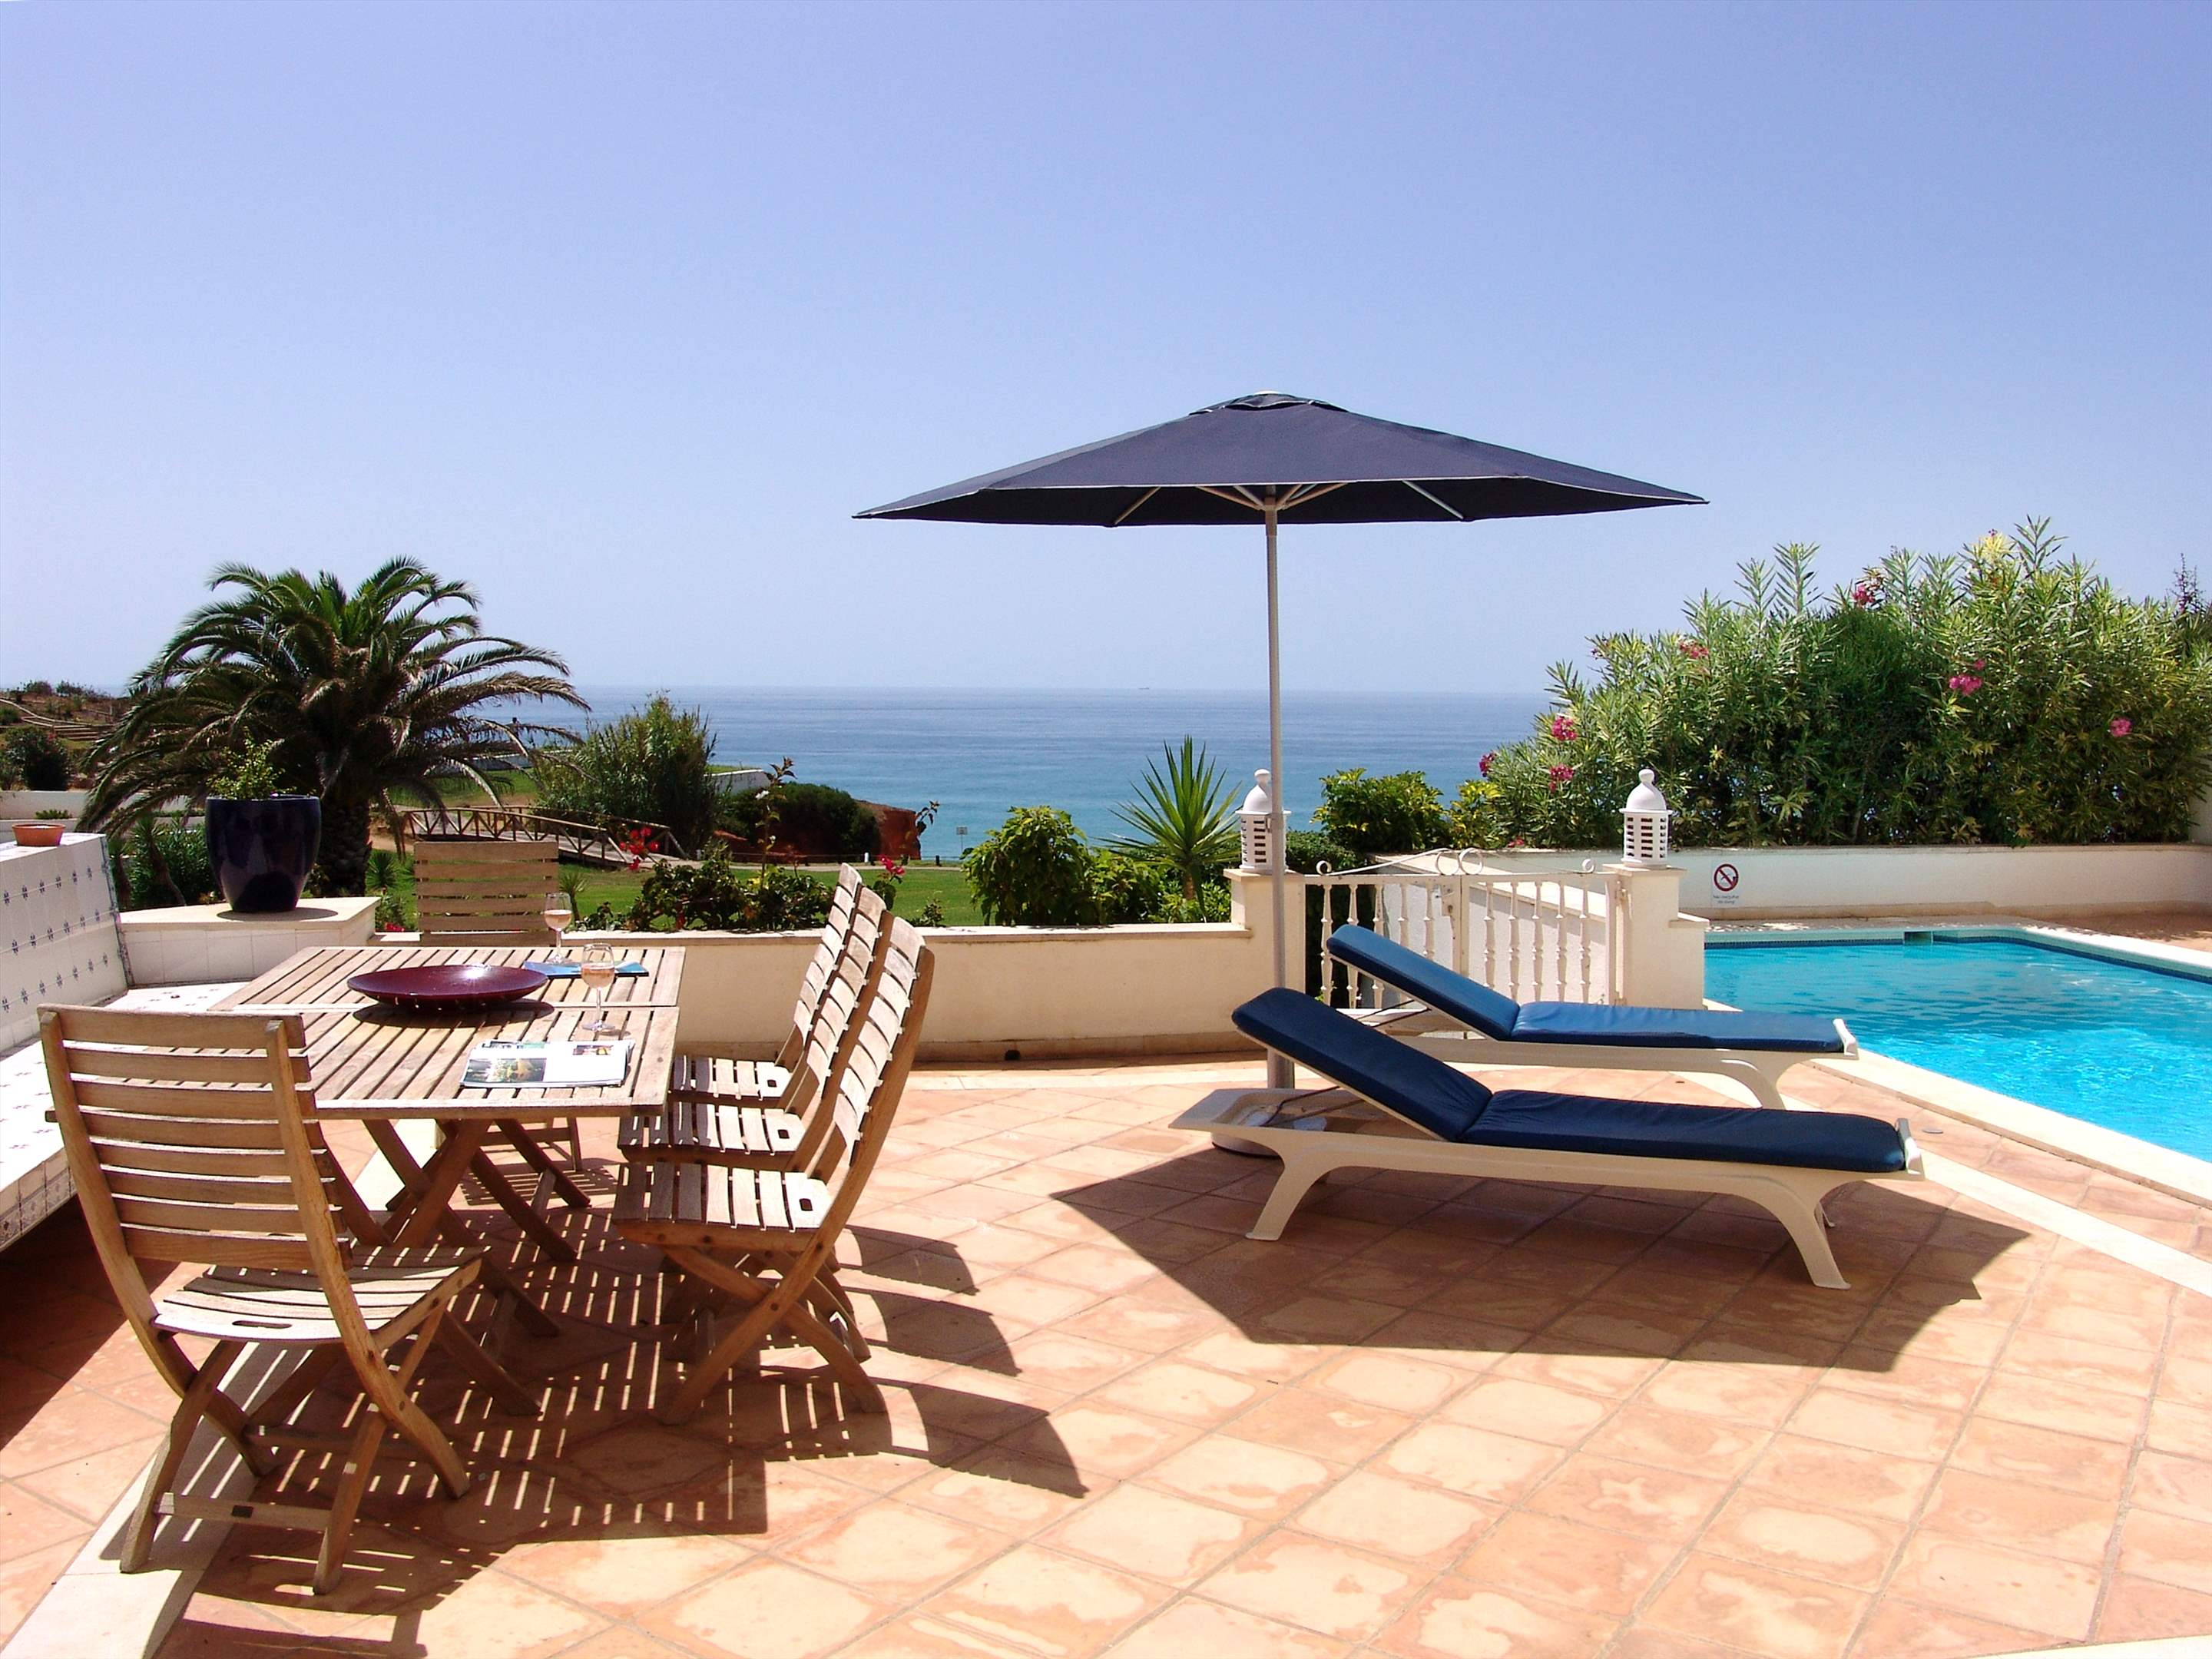 Villas Louisa, 4 Bedroom, 4 bedroom villa in Vale do Lobo, Algarve Photo #12